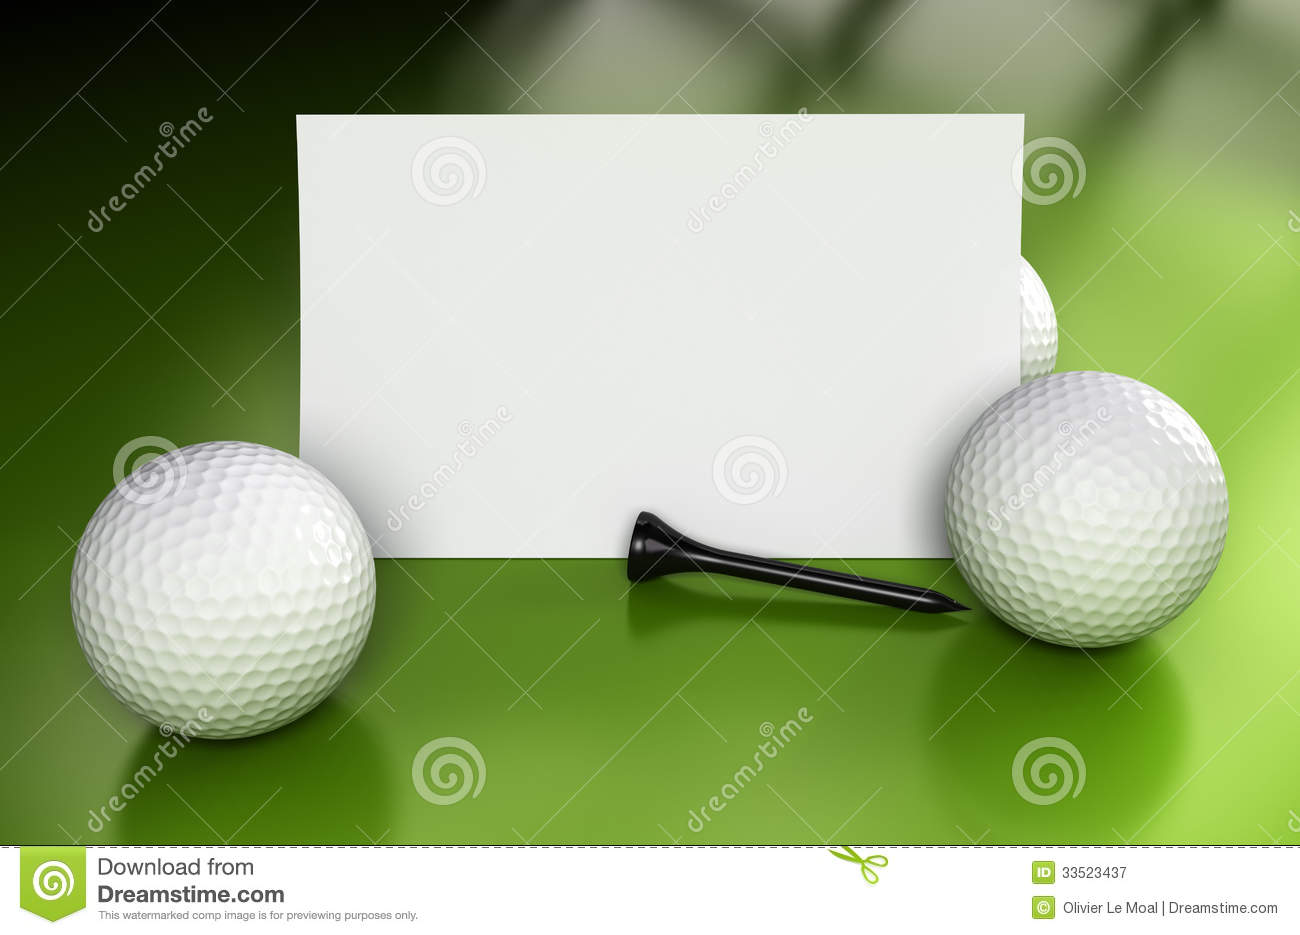 Golf sign or business card over green background with three balls and ...